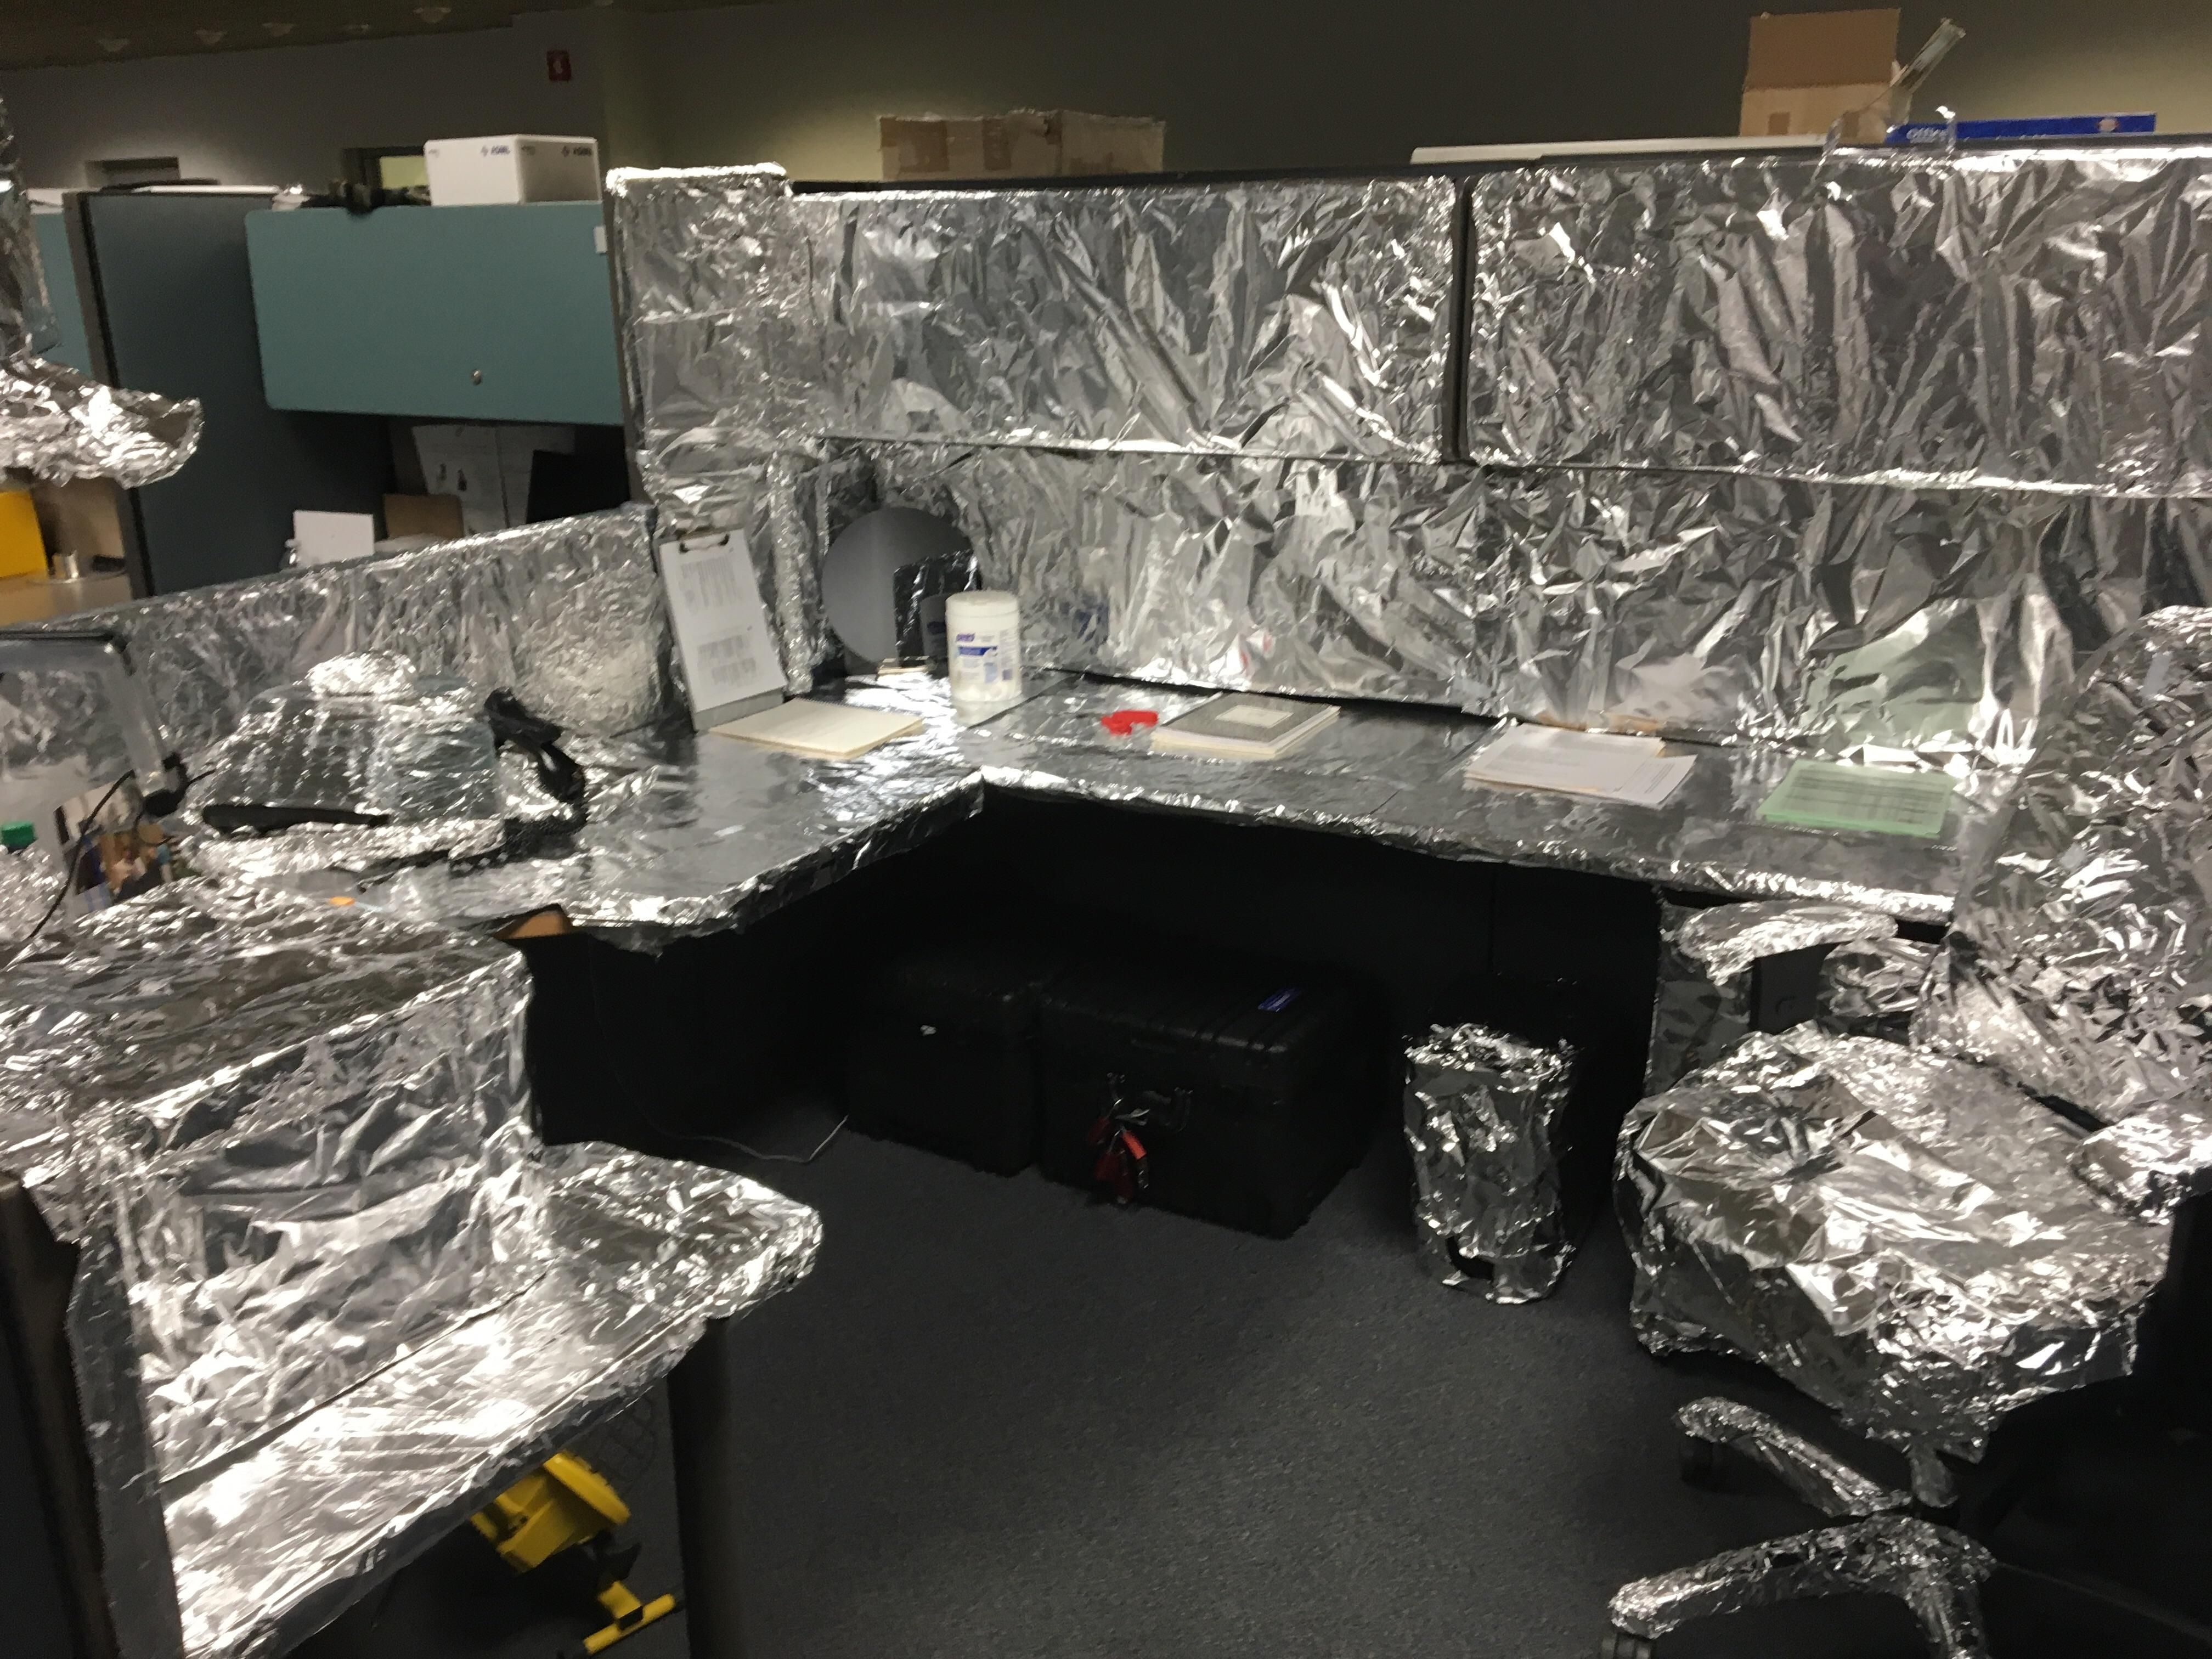 A coworker left after 23 years where I work, this was his ...